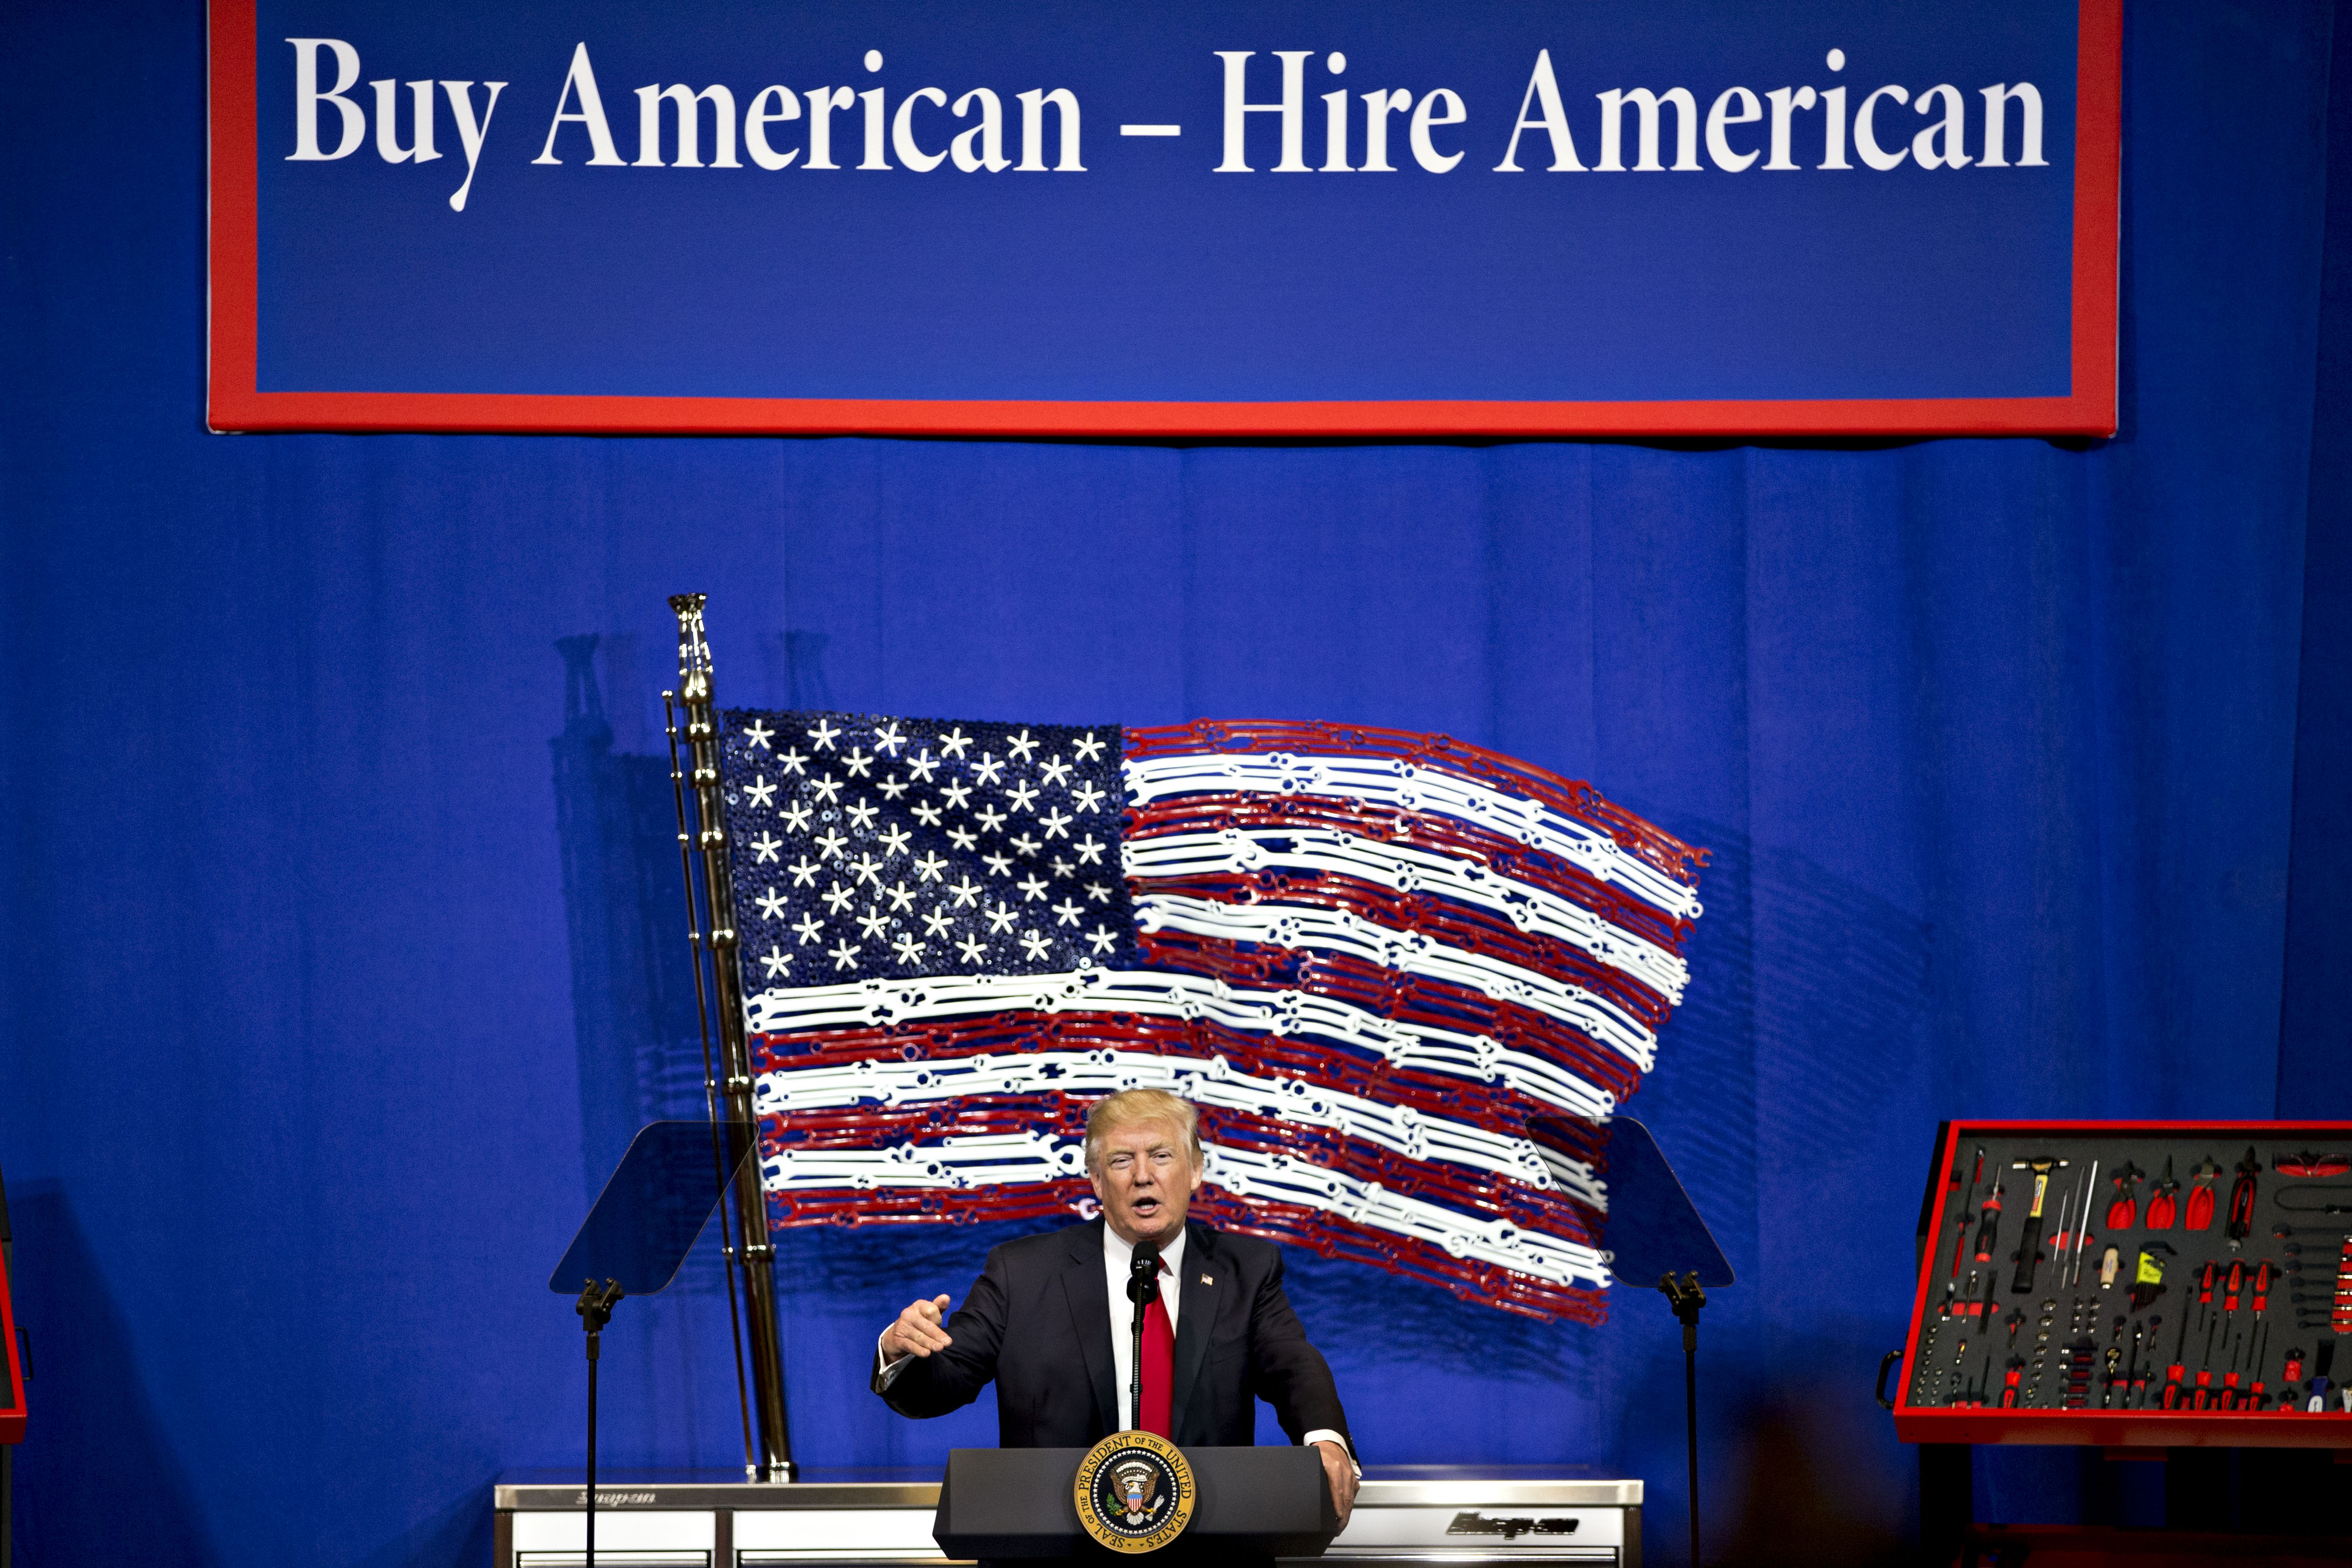 President Donald Trump speaks during an event at Snap-On Tools Corp. headquarters in Kenosha, Wisconsin on April 18, 2017.